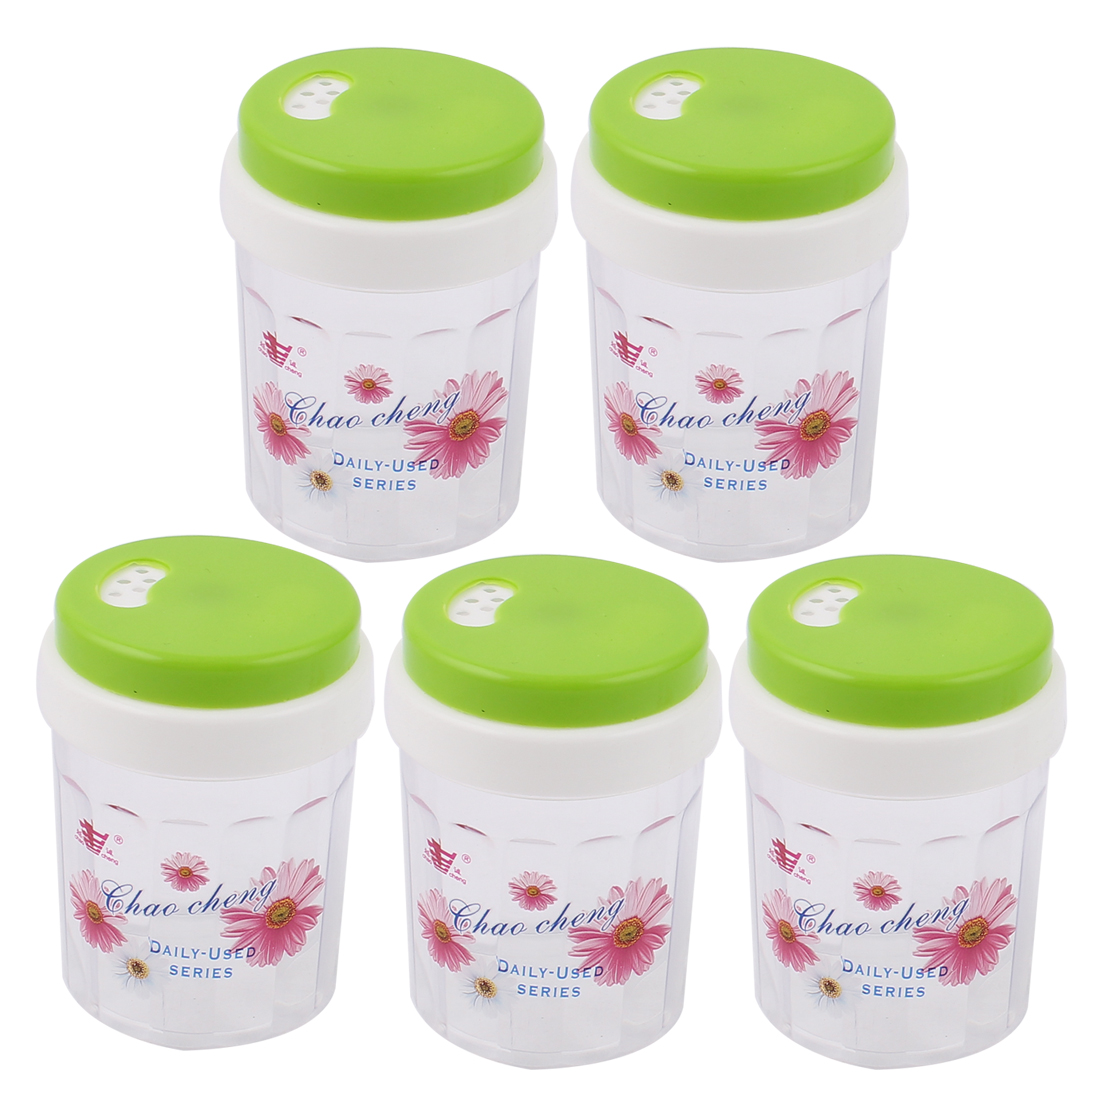 Plastic Spice Condiment Jar Toothpick Holder Container Dispenser Green 5pcs